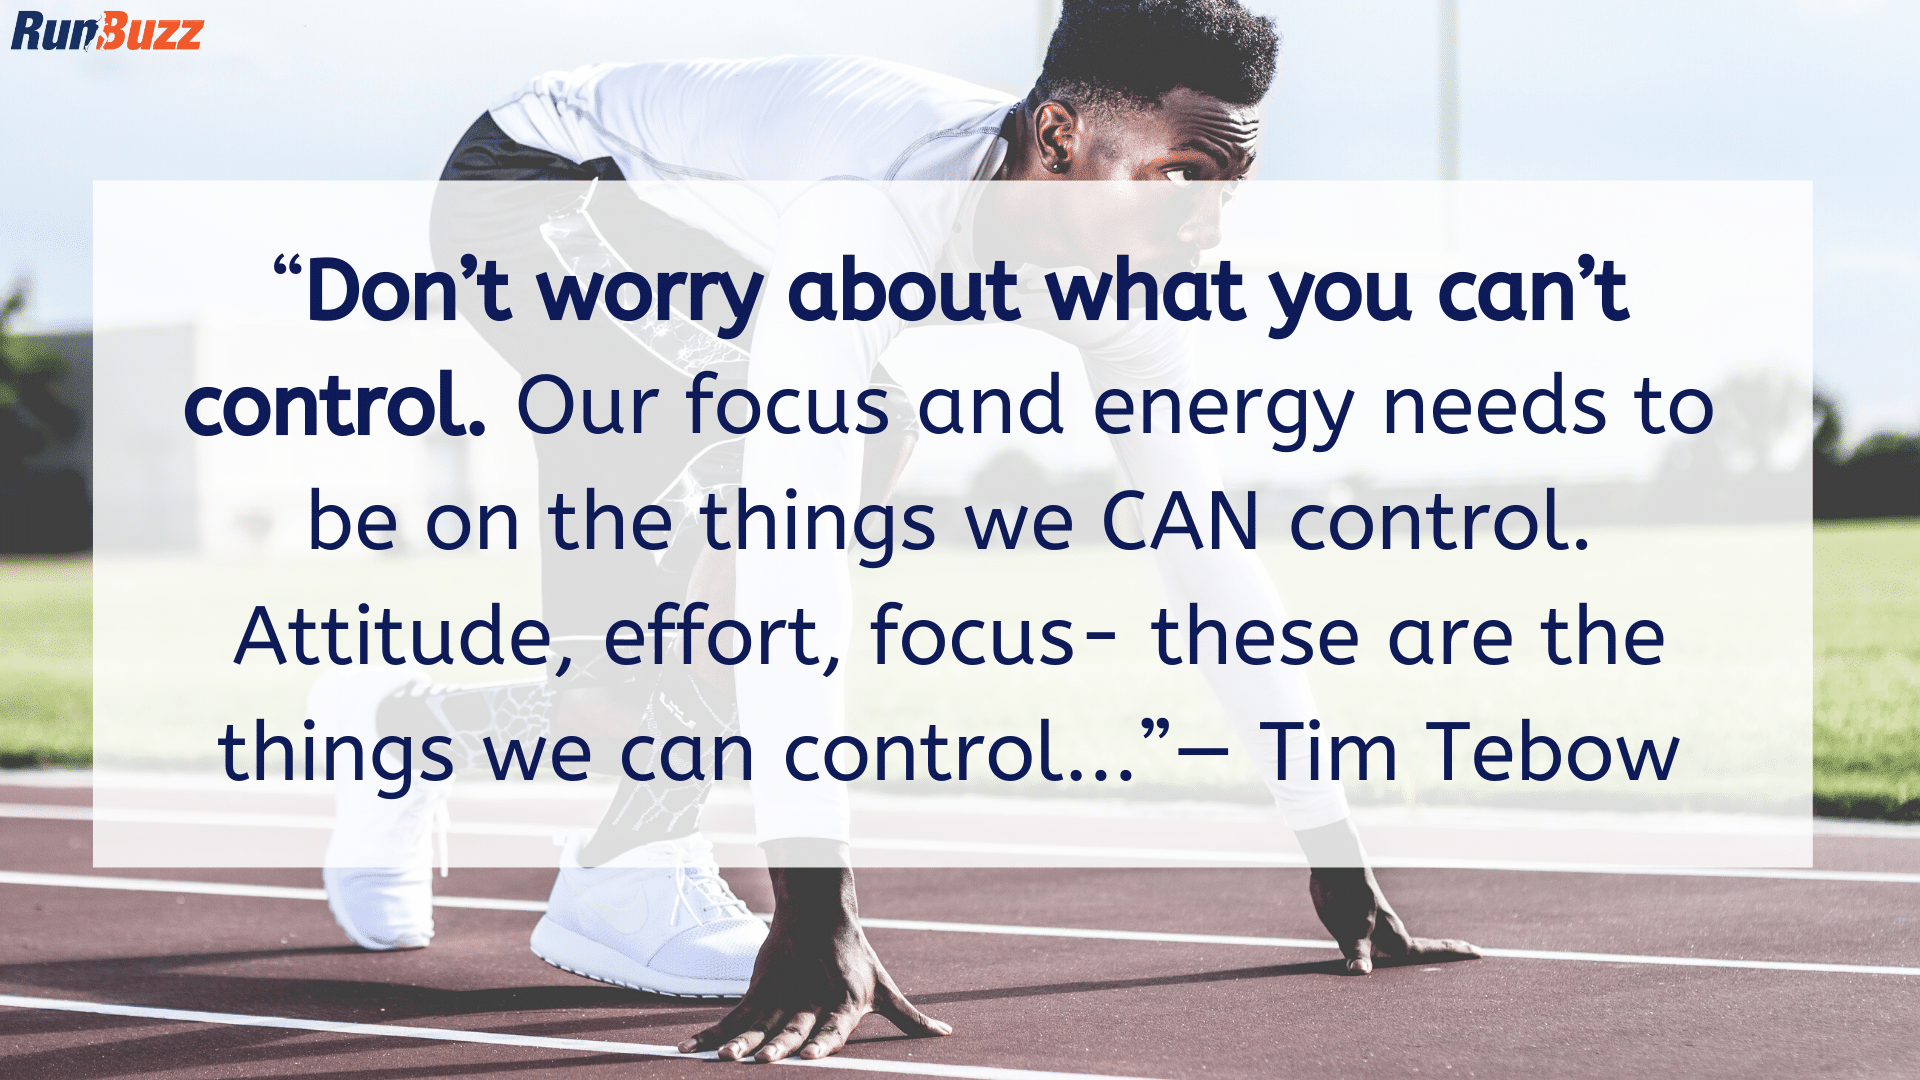 Don't-worry-about-what-you-can't-control